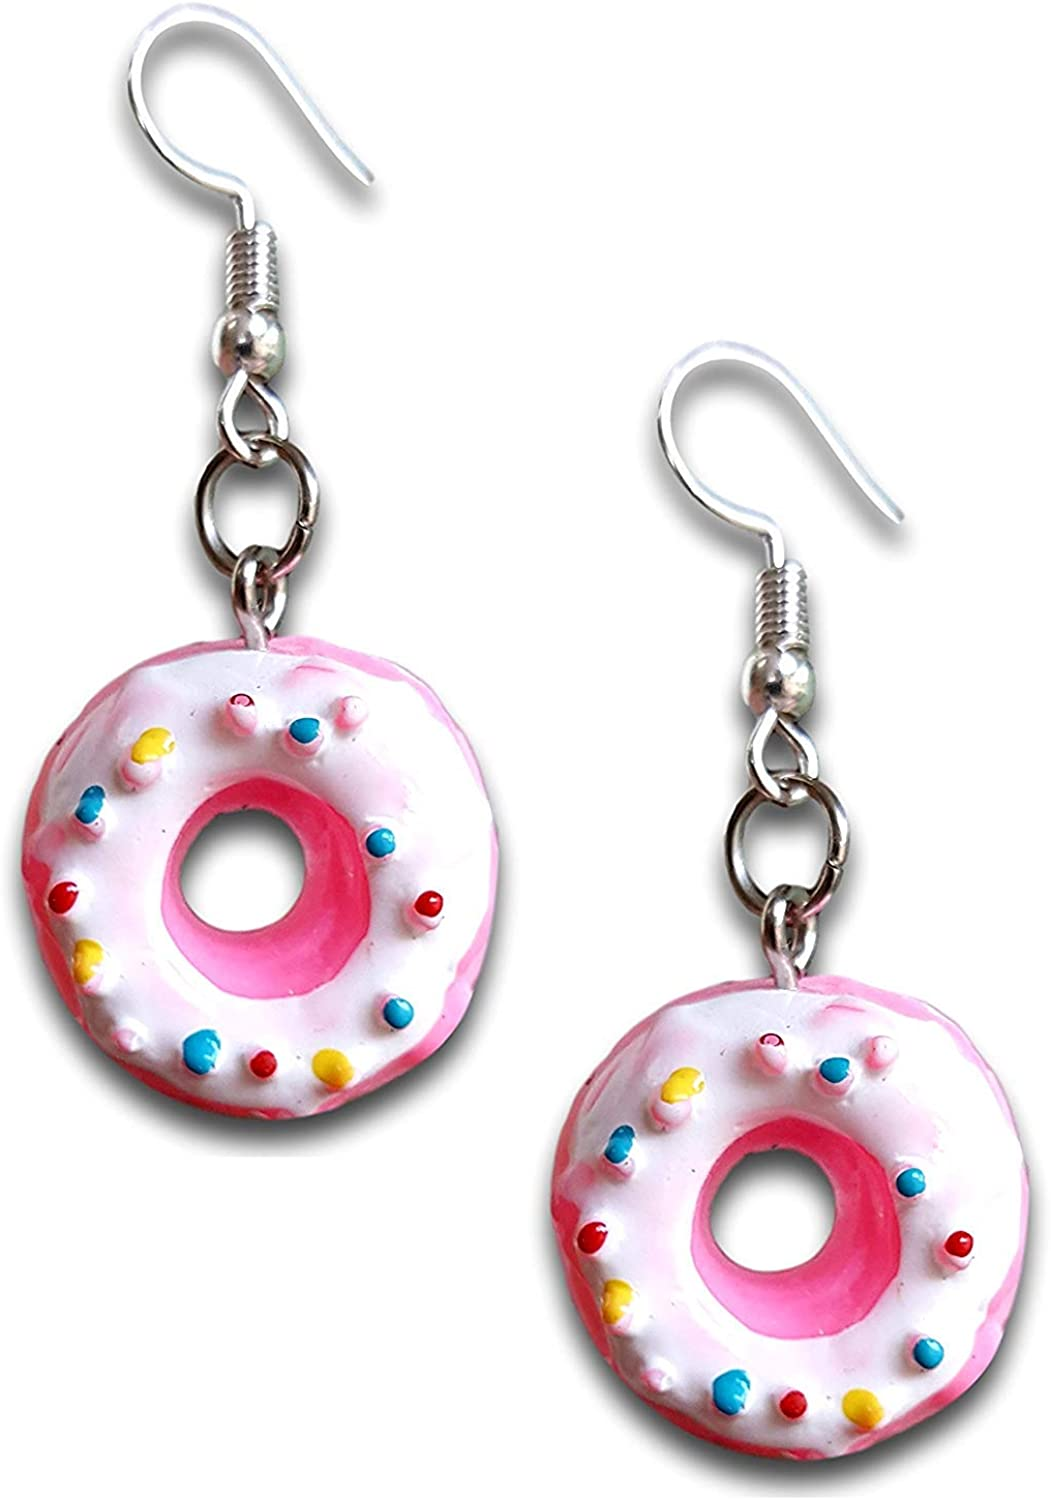 Pink Donut w/White Yummy Icing Tiny Food Mini Dangle Earrings by Pashal